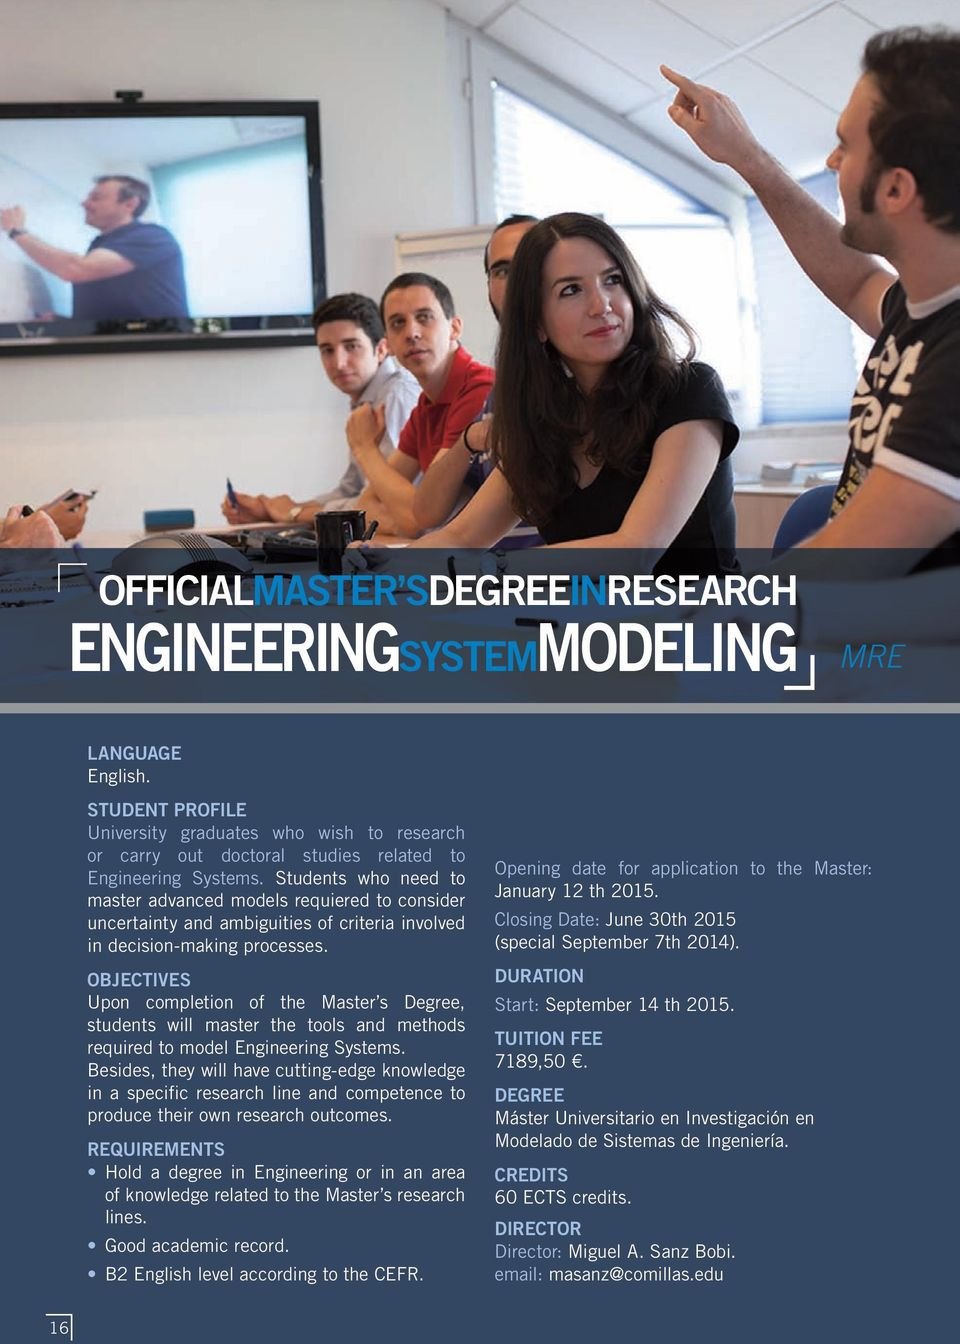 Objectives Upon completion of the Master s Degree, students will master the tools and methods required to model Engineering Systems.